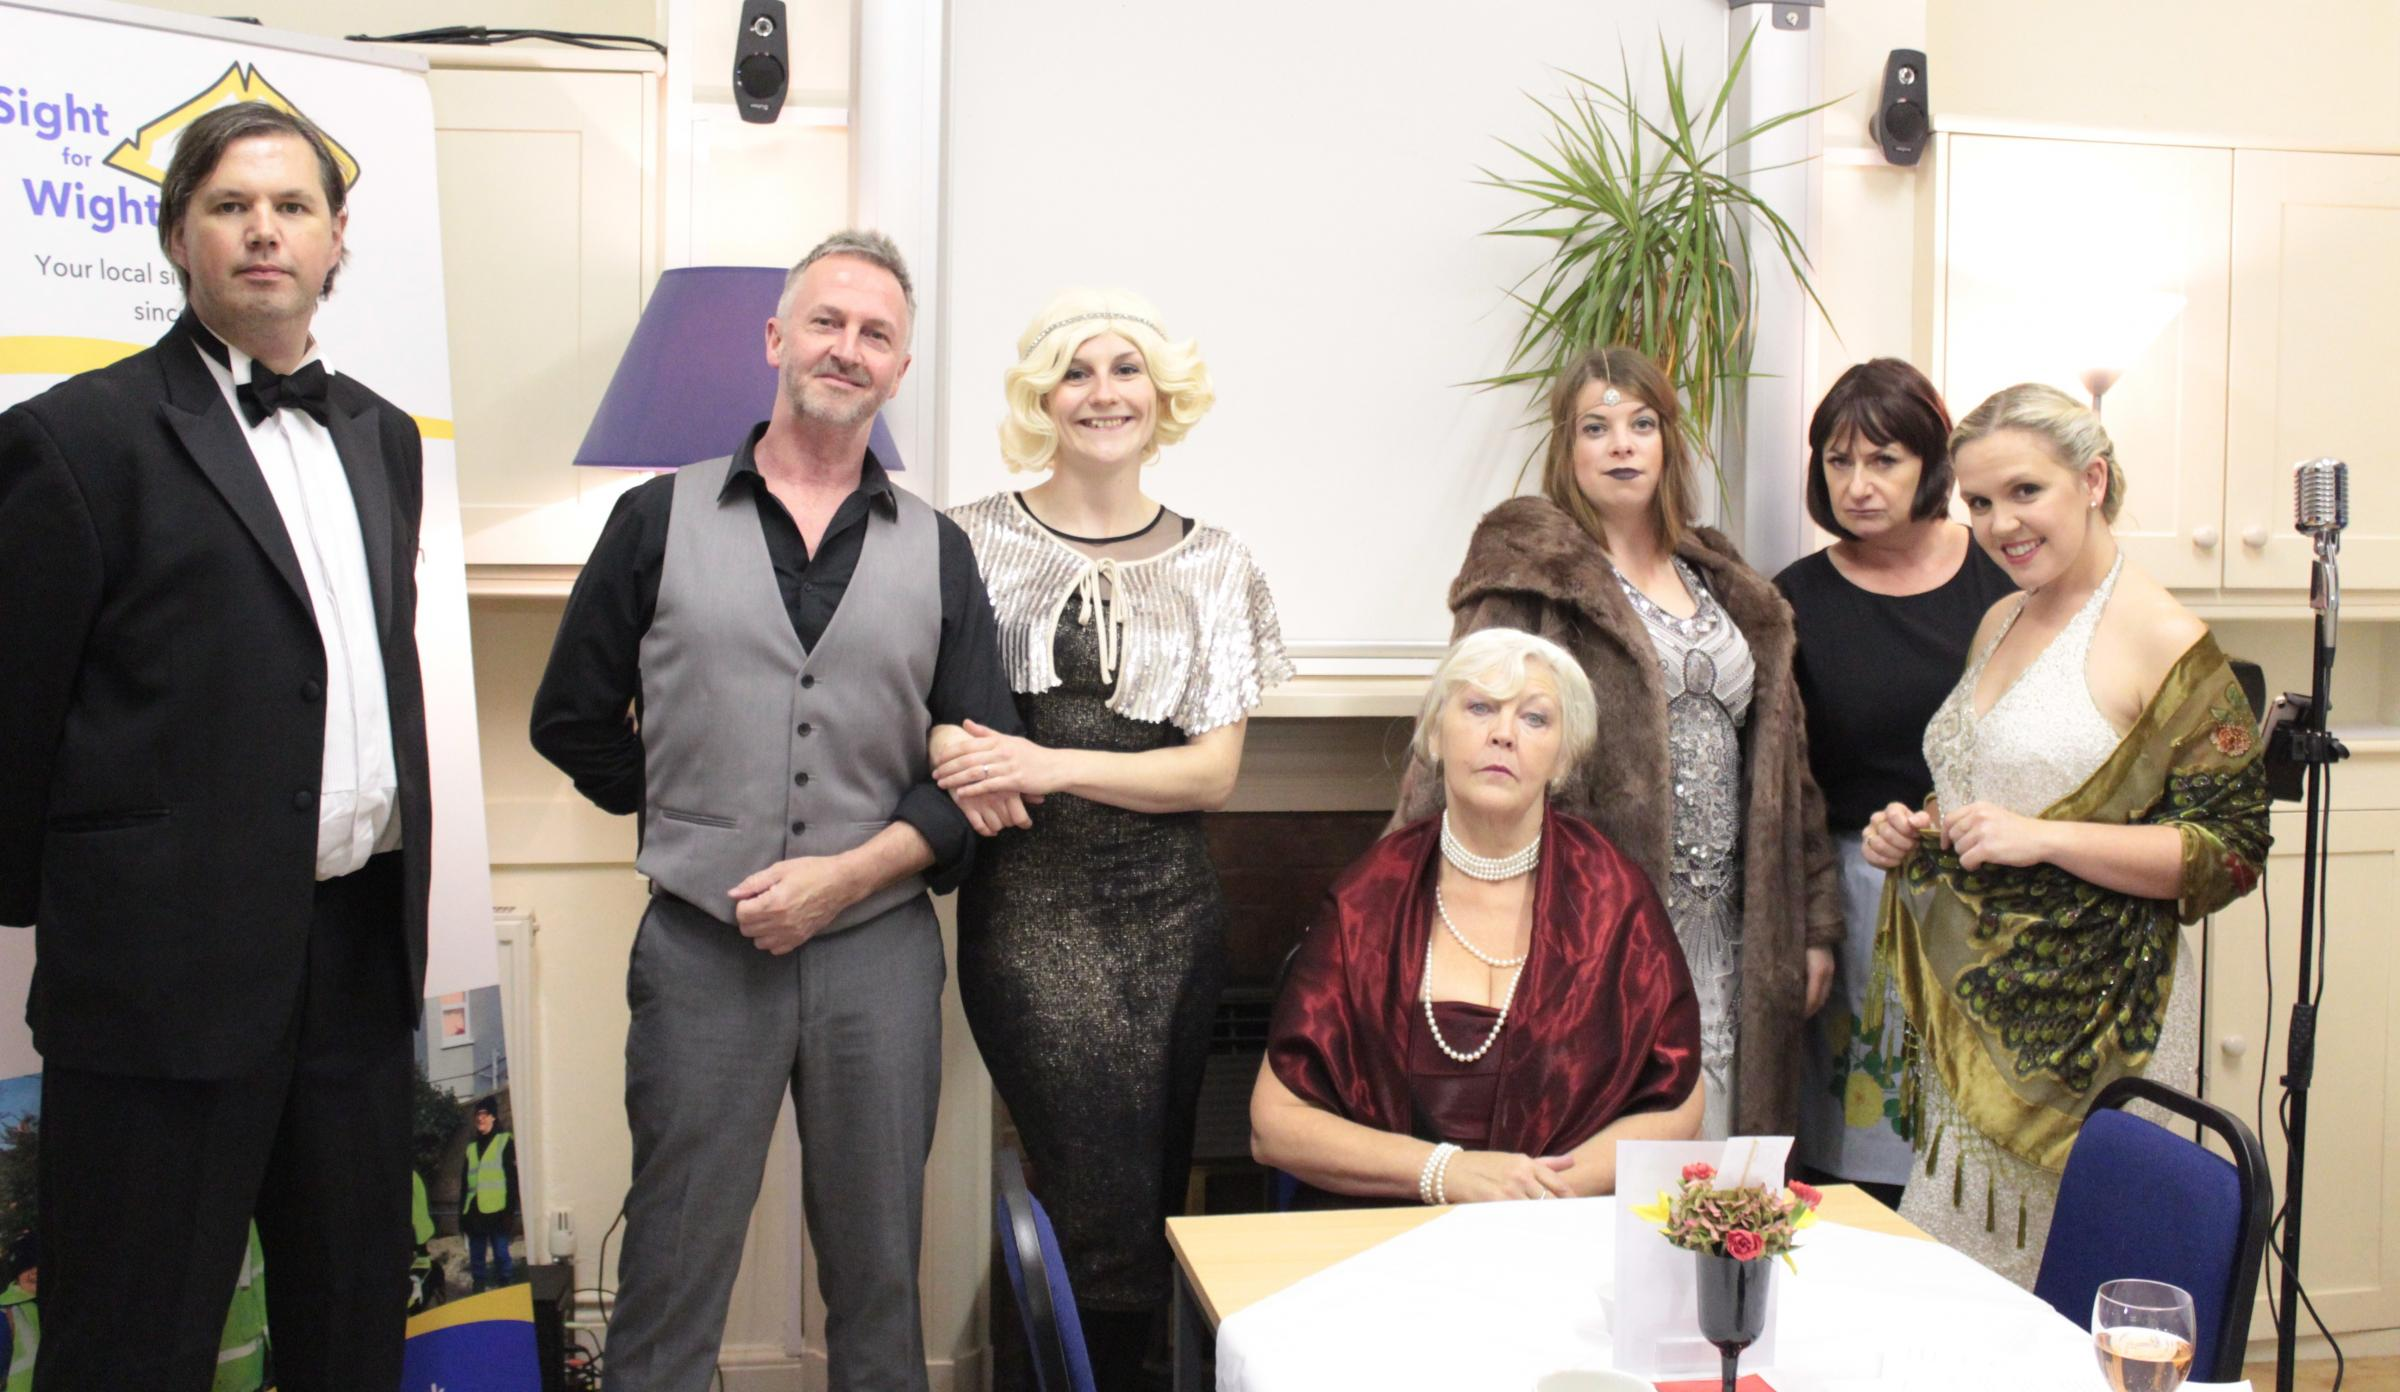 Super sleuths solve murder mystery at Sight for Wight event